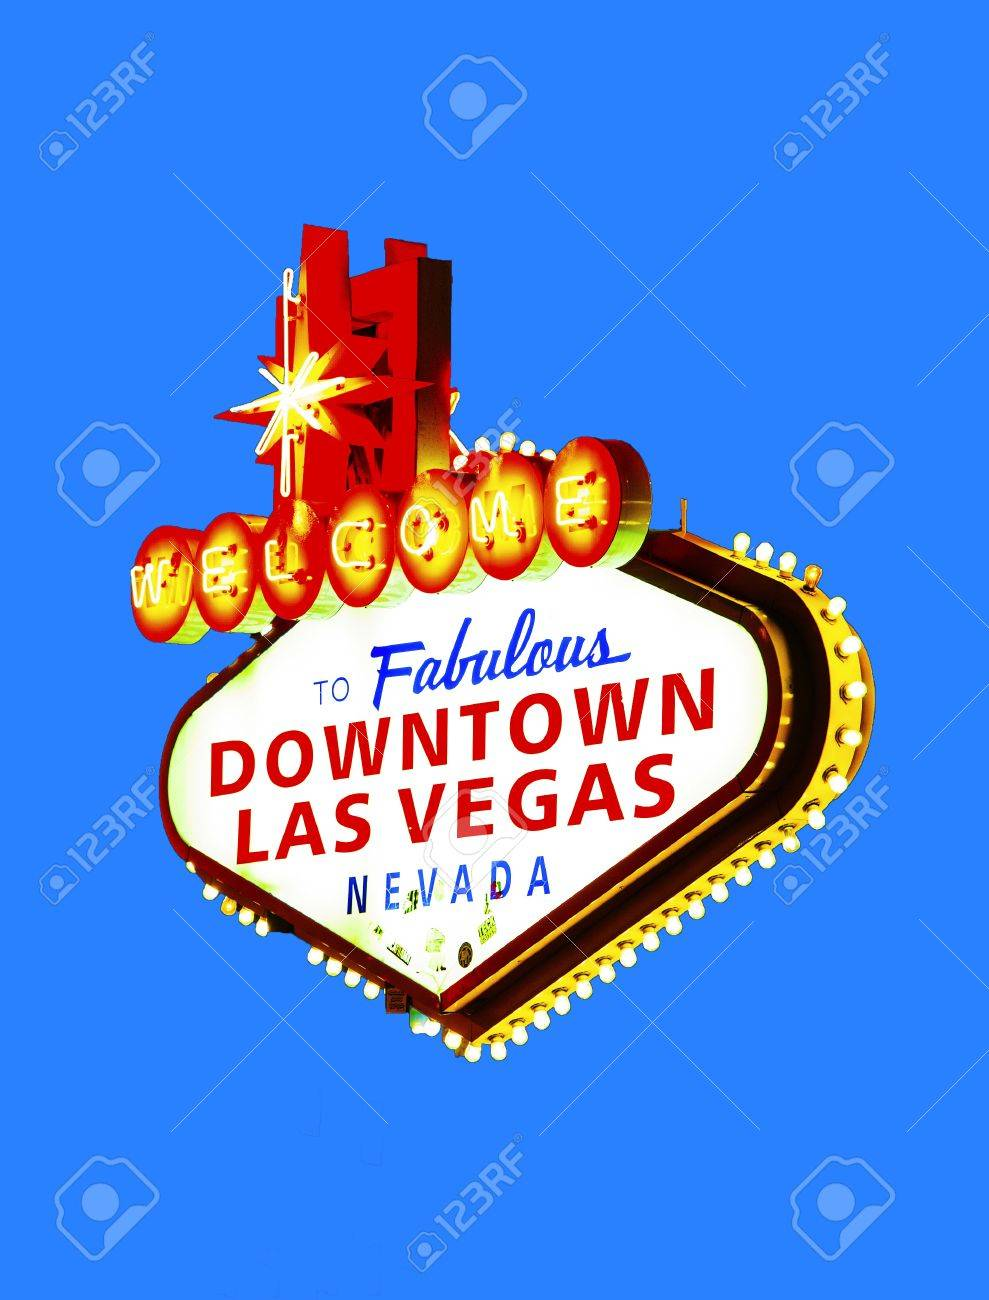 The downtown Las Vegas sign at night Stock Photo - 14500405